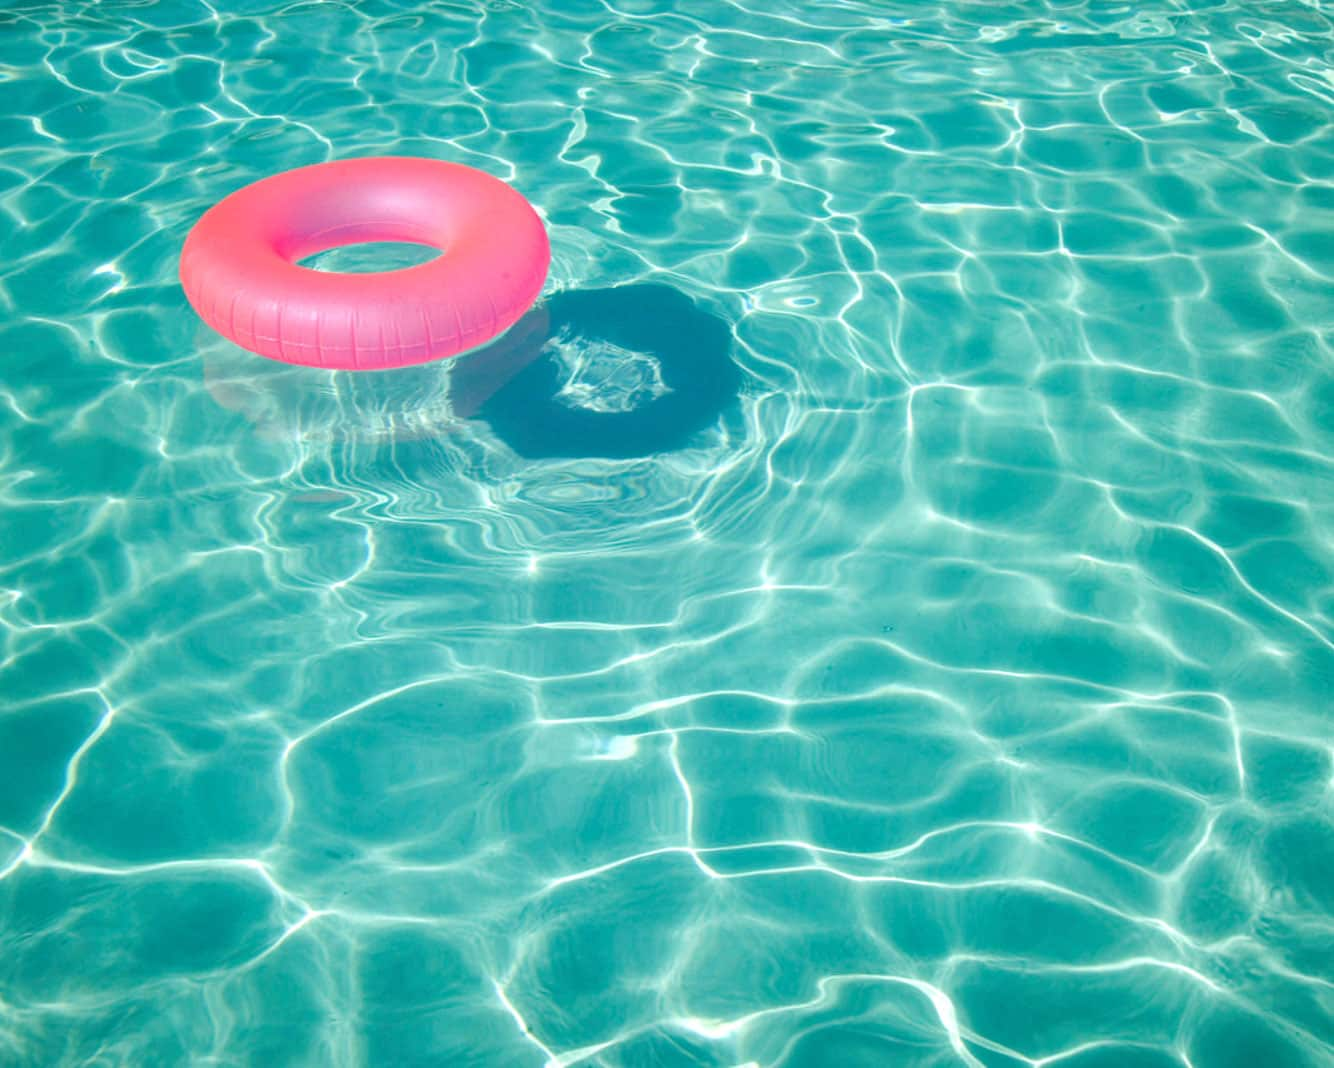 Pink inflatable floating donut in a pool